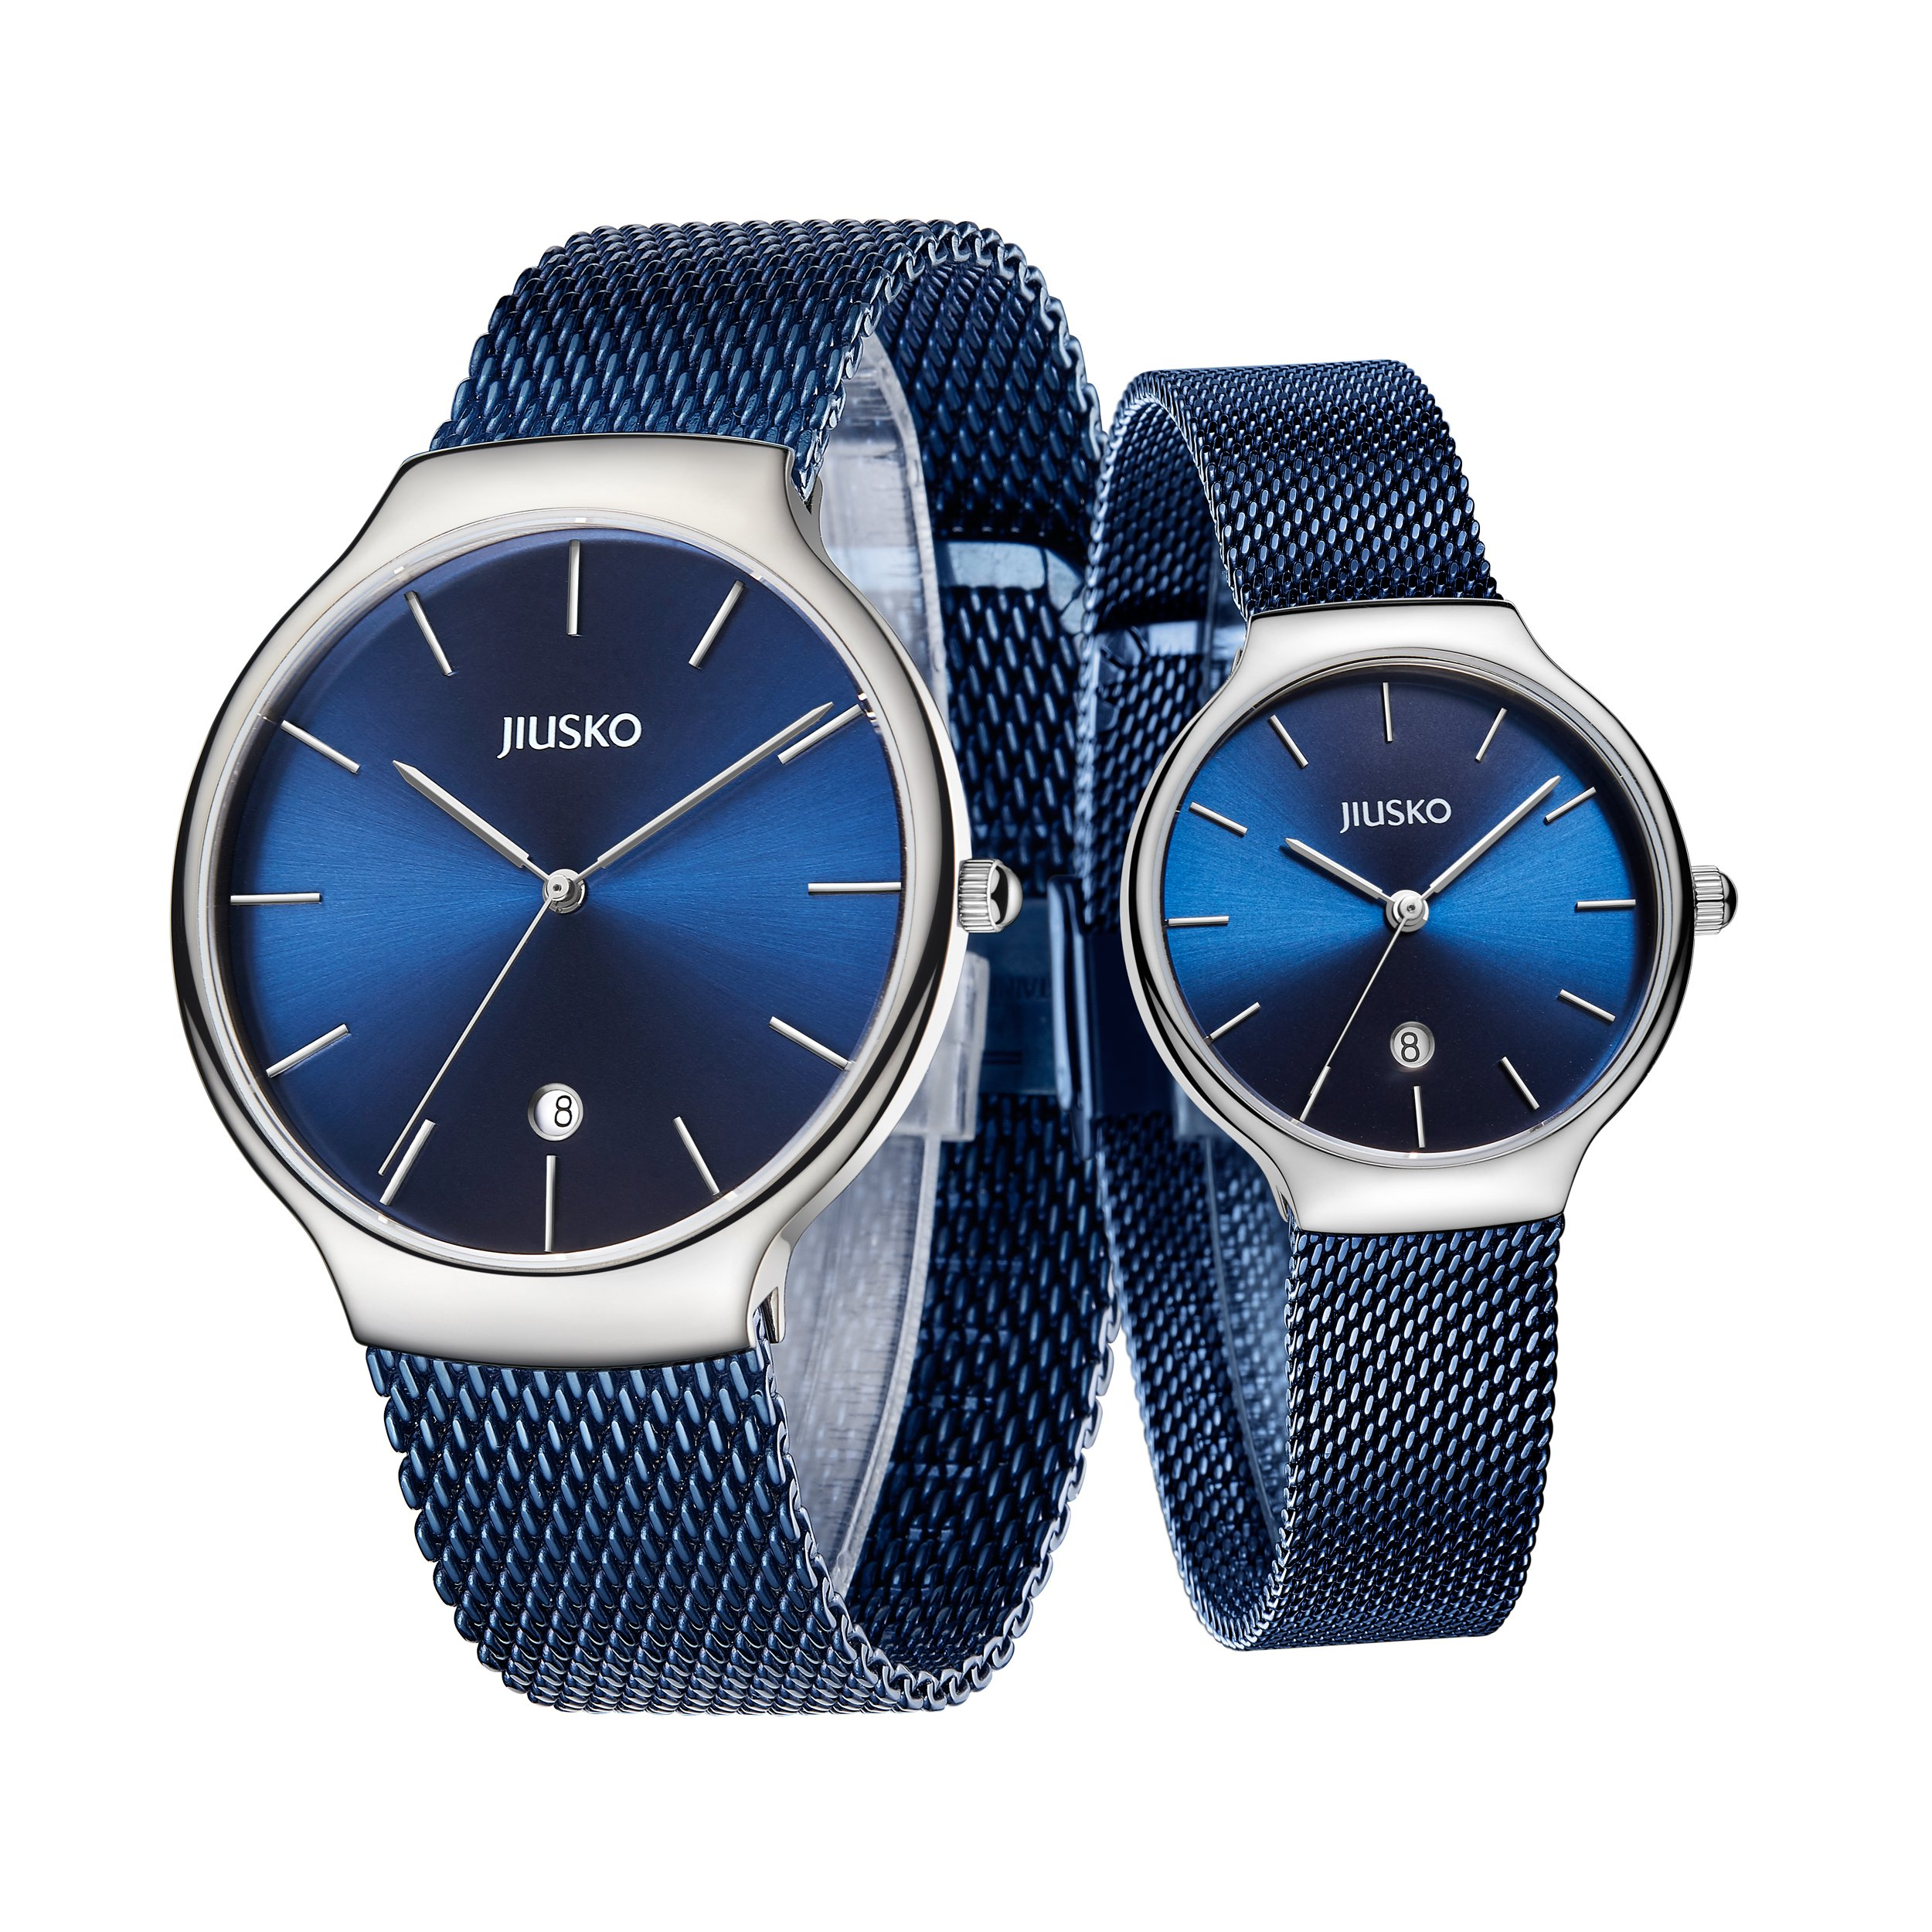 Jiusko Sapphire - Men Women Quartz Watches - Steel Mesh - 382 (His Her - Blue, Silver)